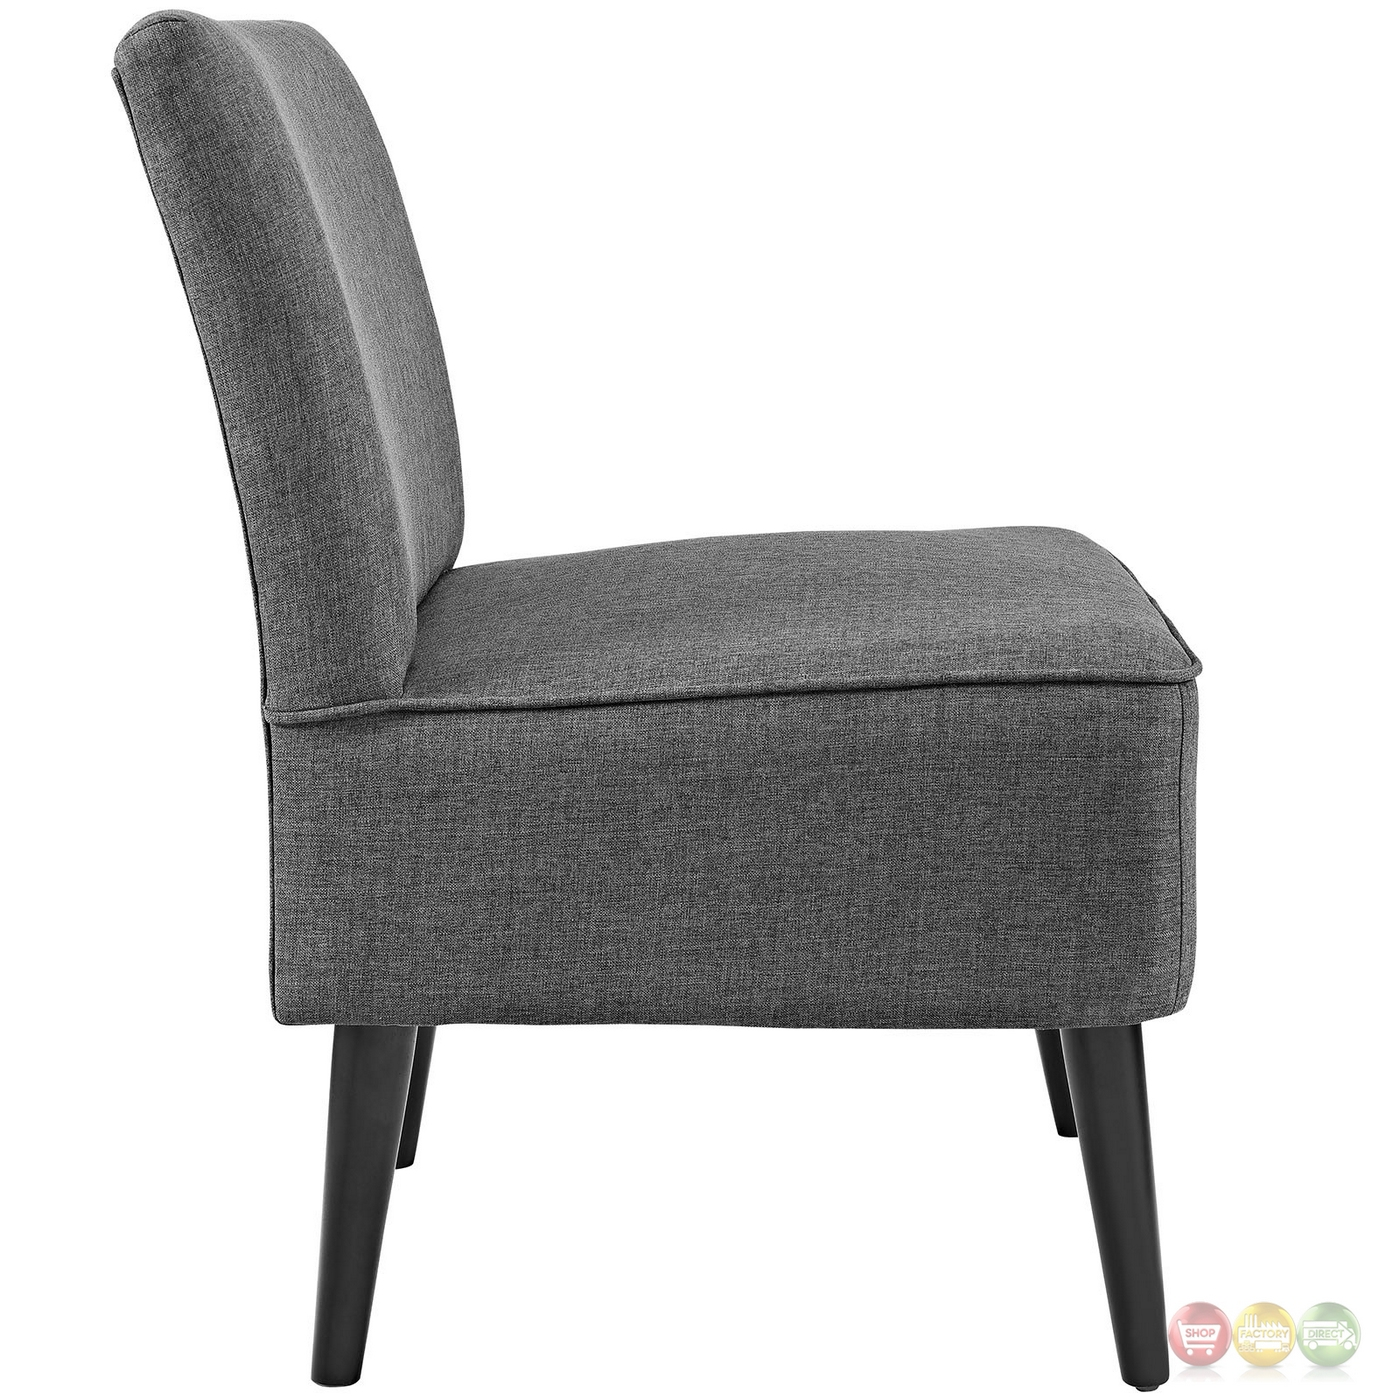 gray side chair luxury directors chairs reef contemporary upholstered with wooden legs